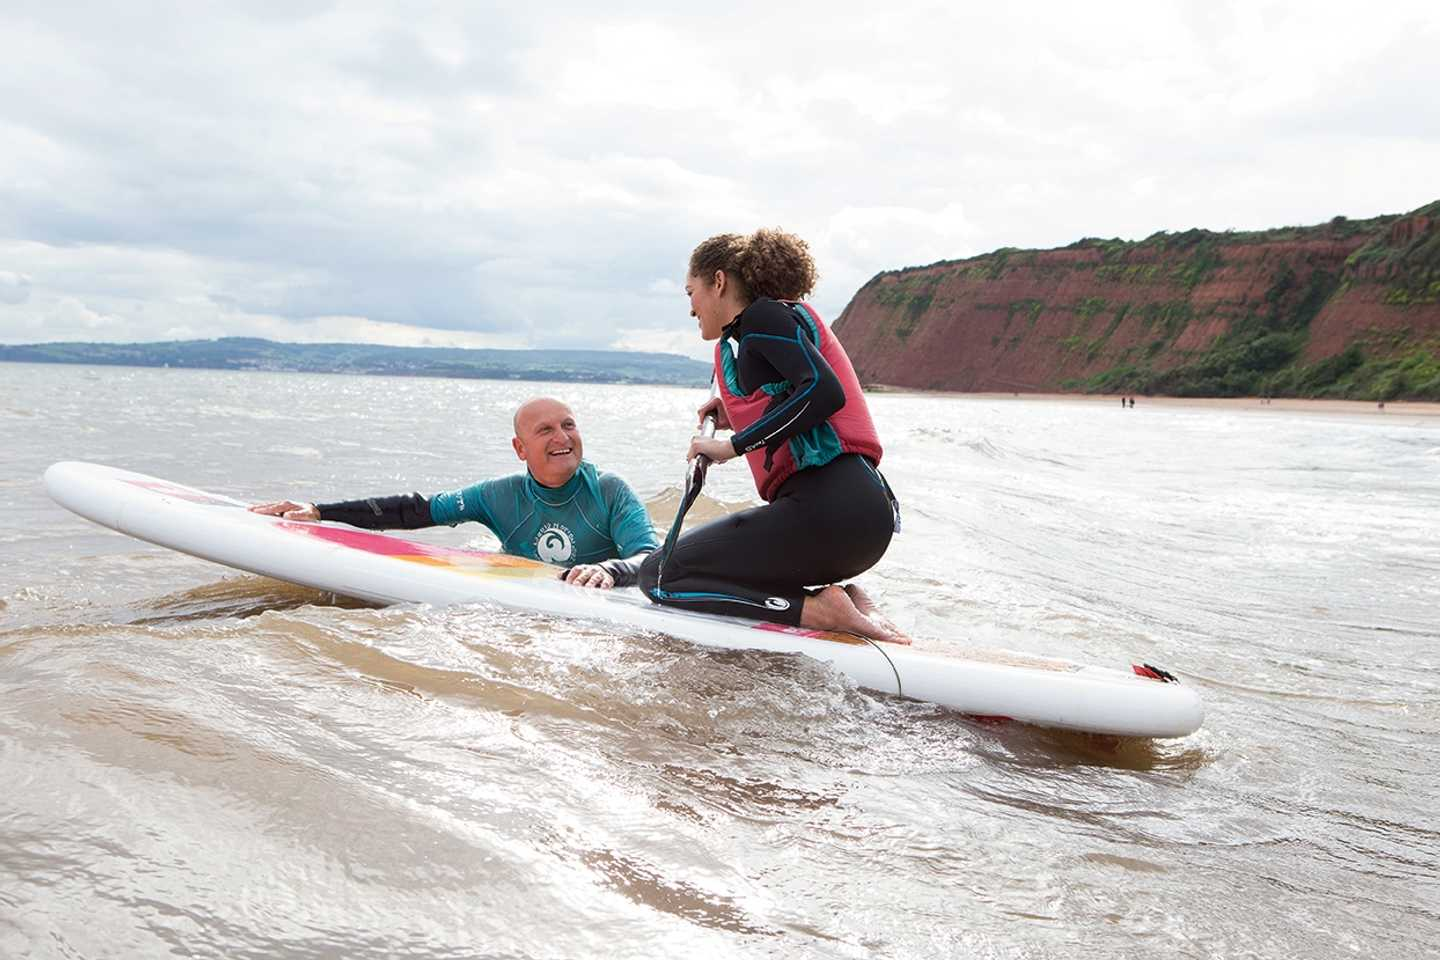 A guest paddleboarding in the sea in Devon